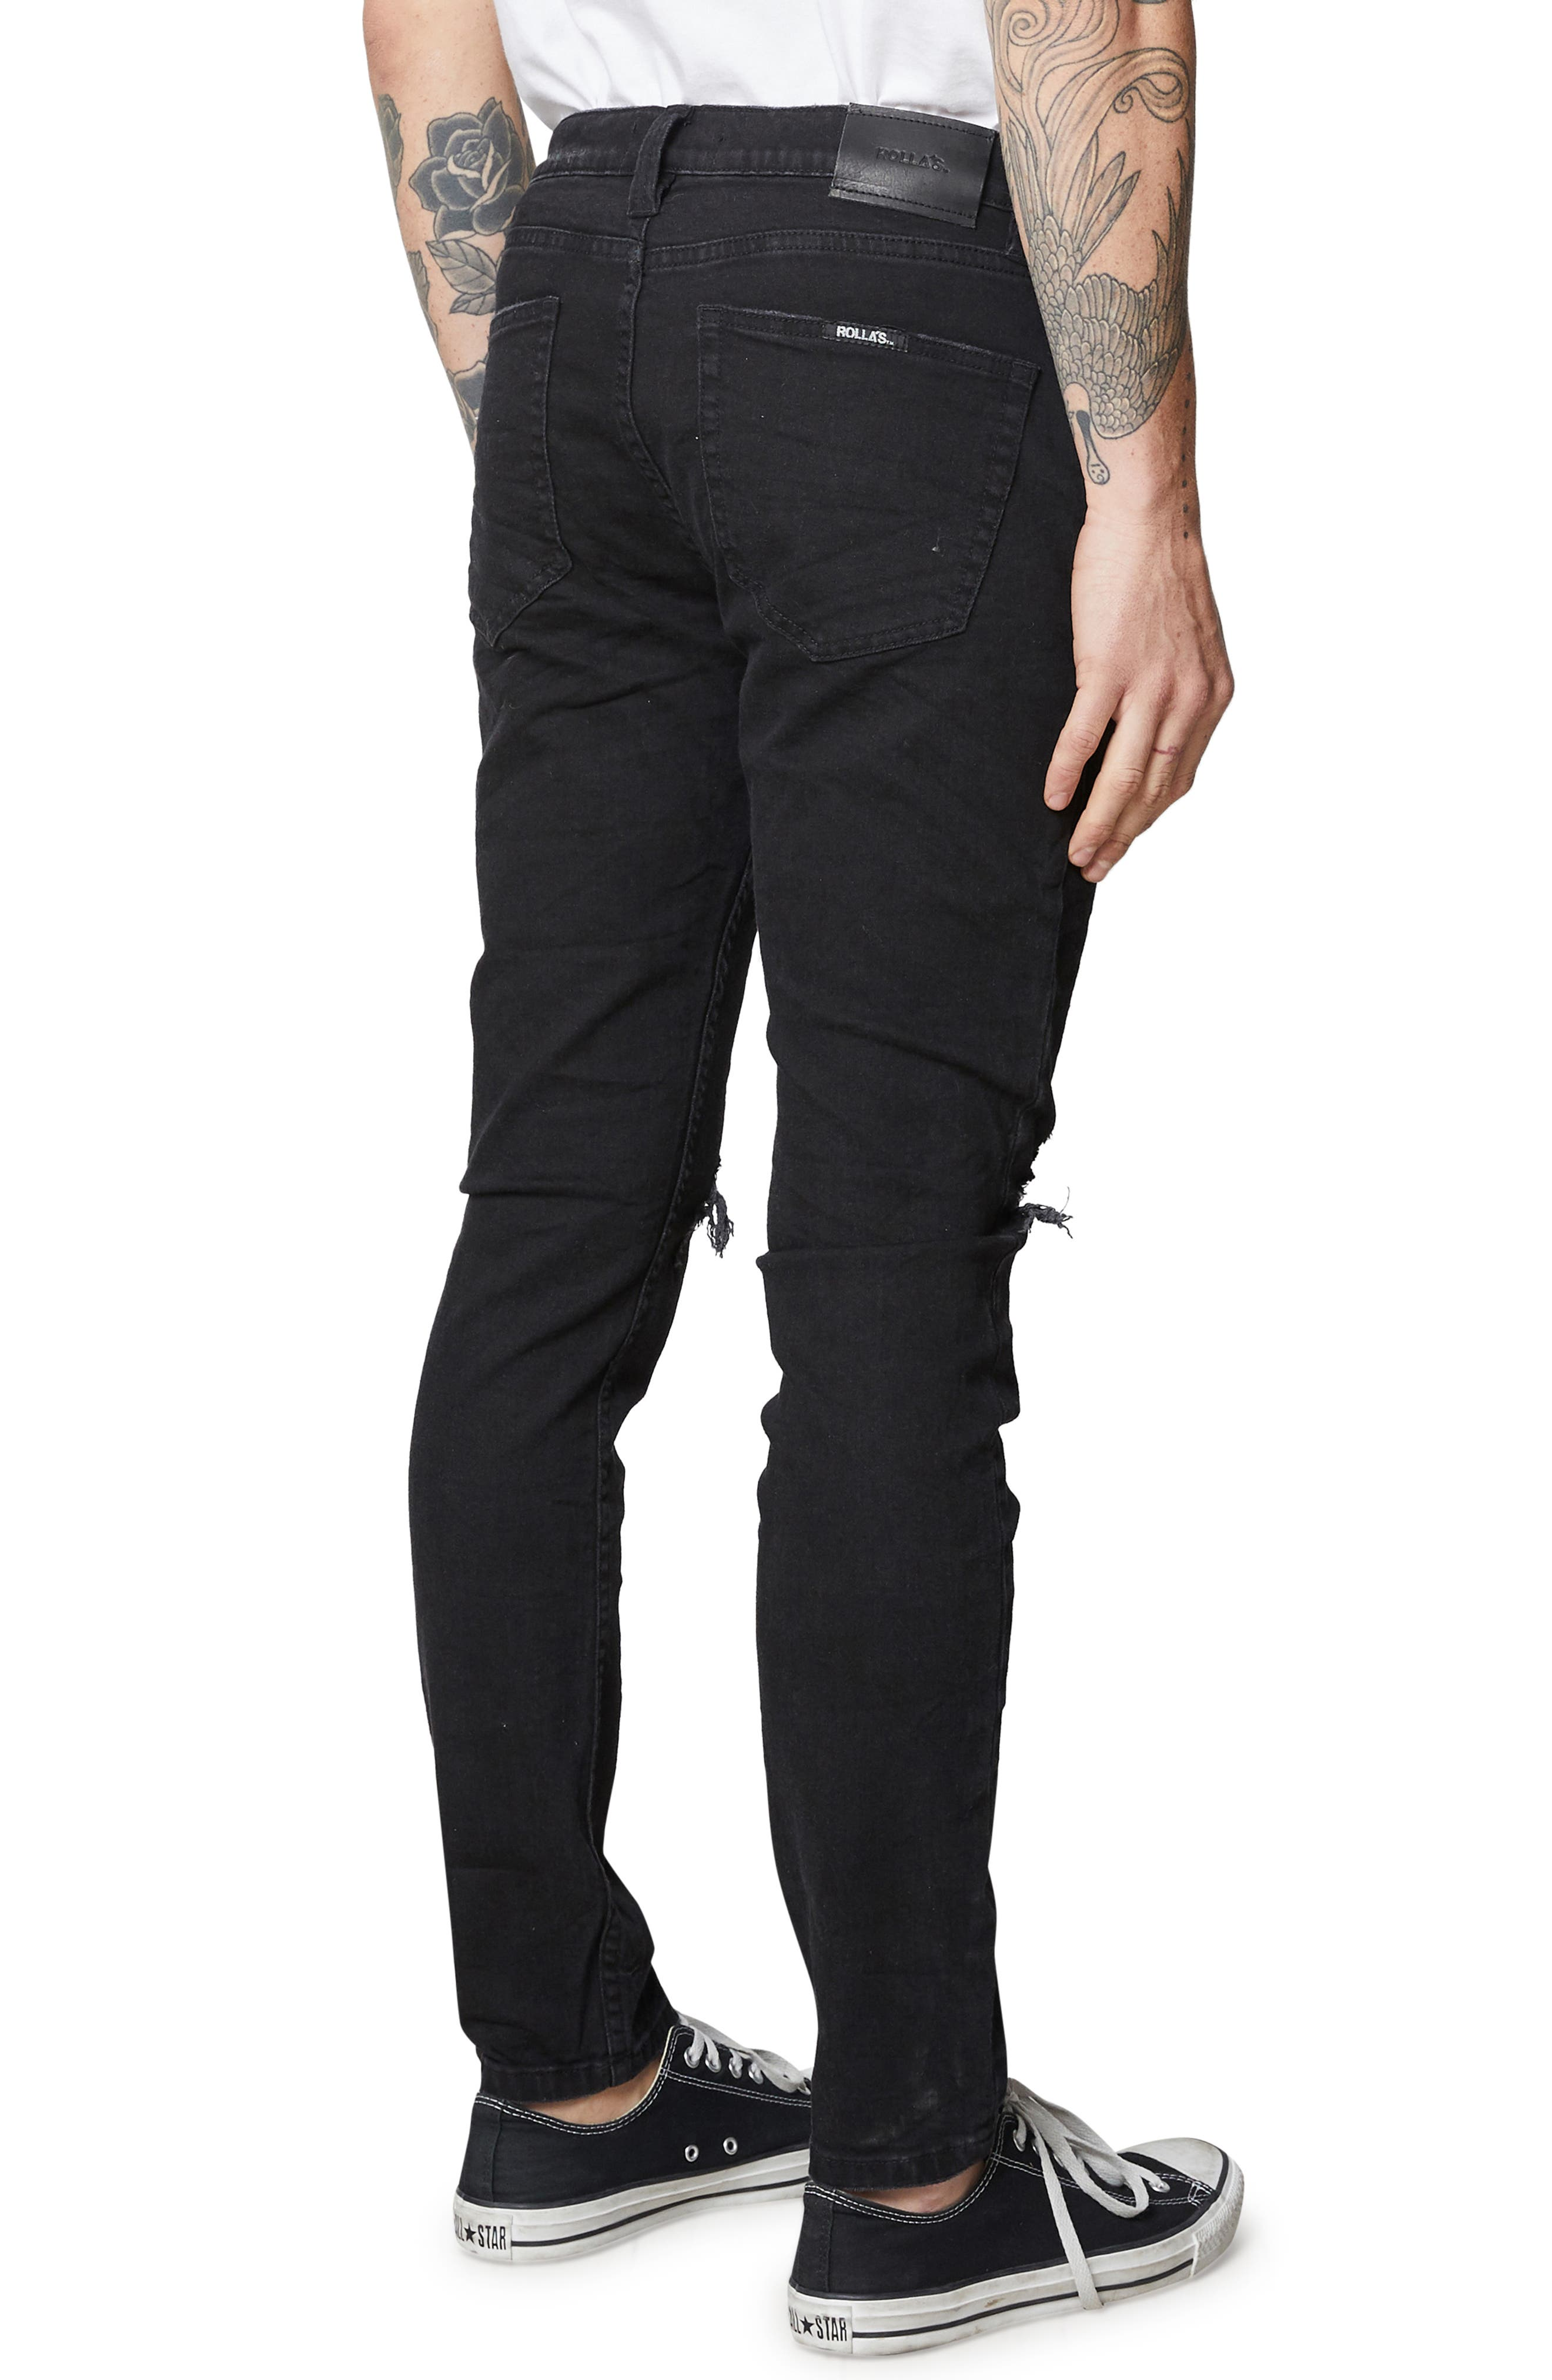 Stinger Skinny Fit Jeans,                             Alternate thumbnail 4, color,                             BLACK RIP